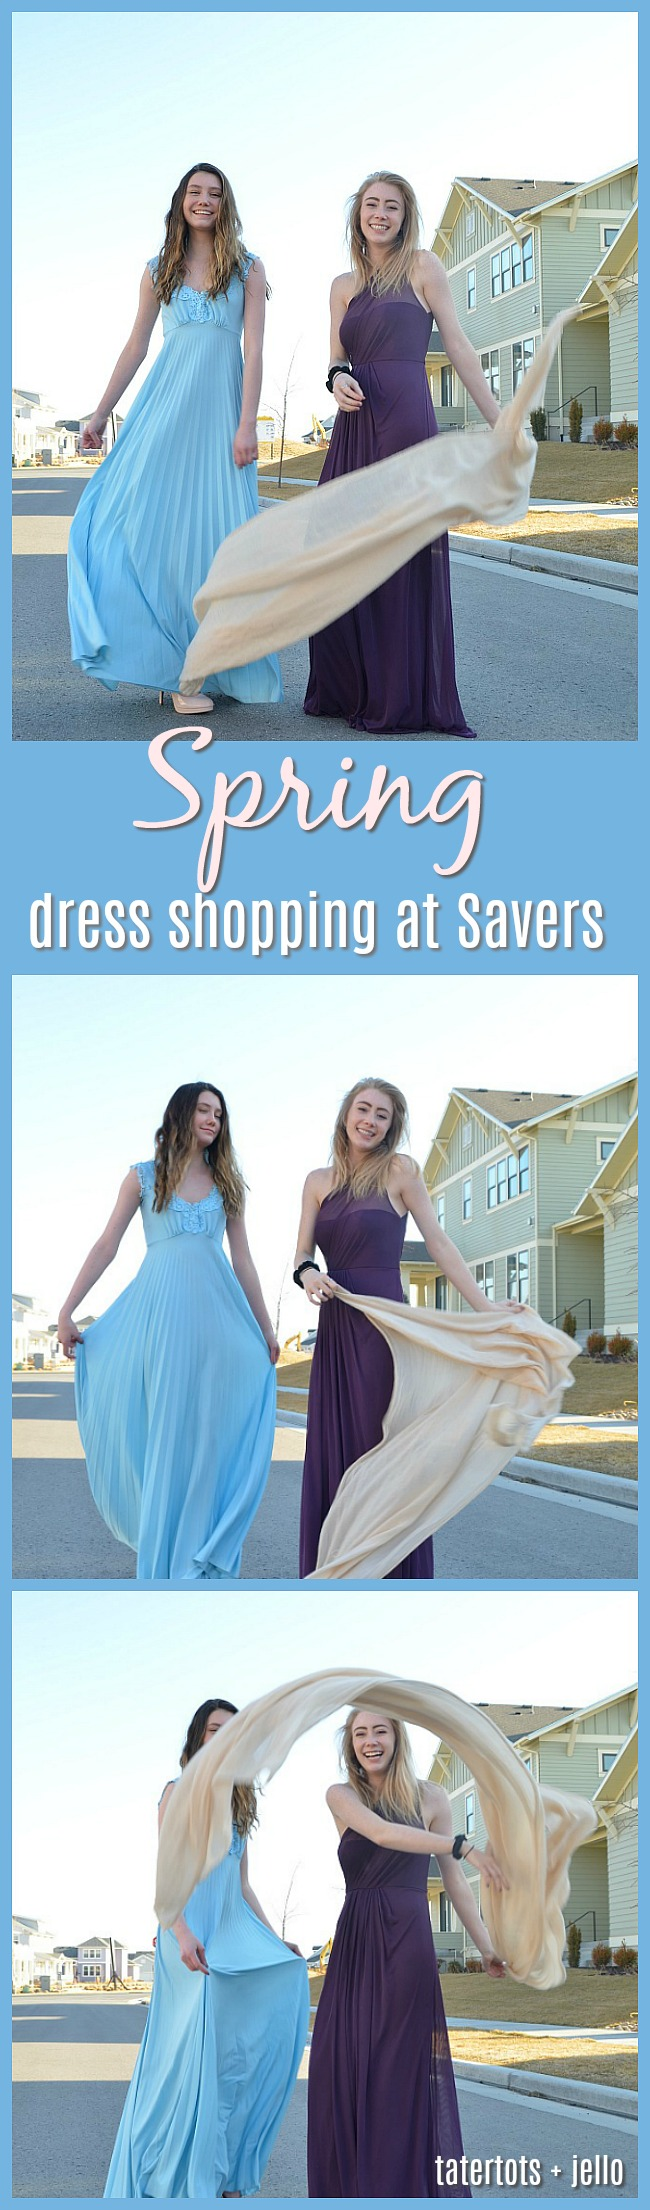 Spring Dress Shopping at Savers - with over 100,000 items you will find an amazing selection at affordable prices!